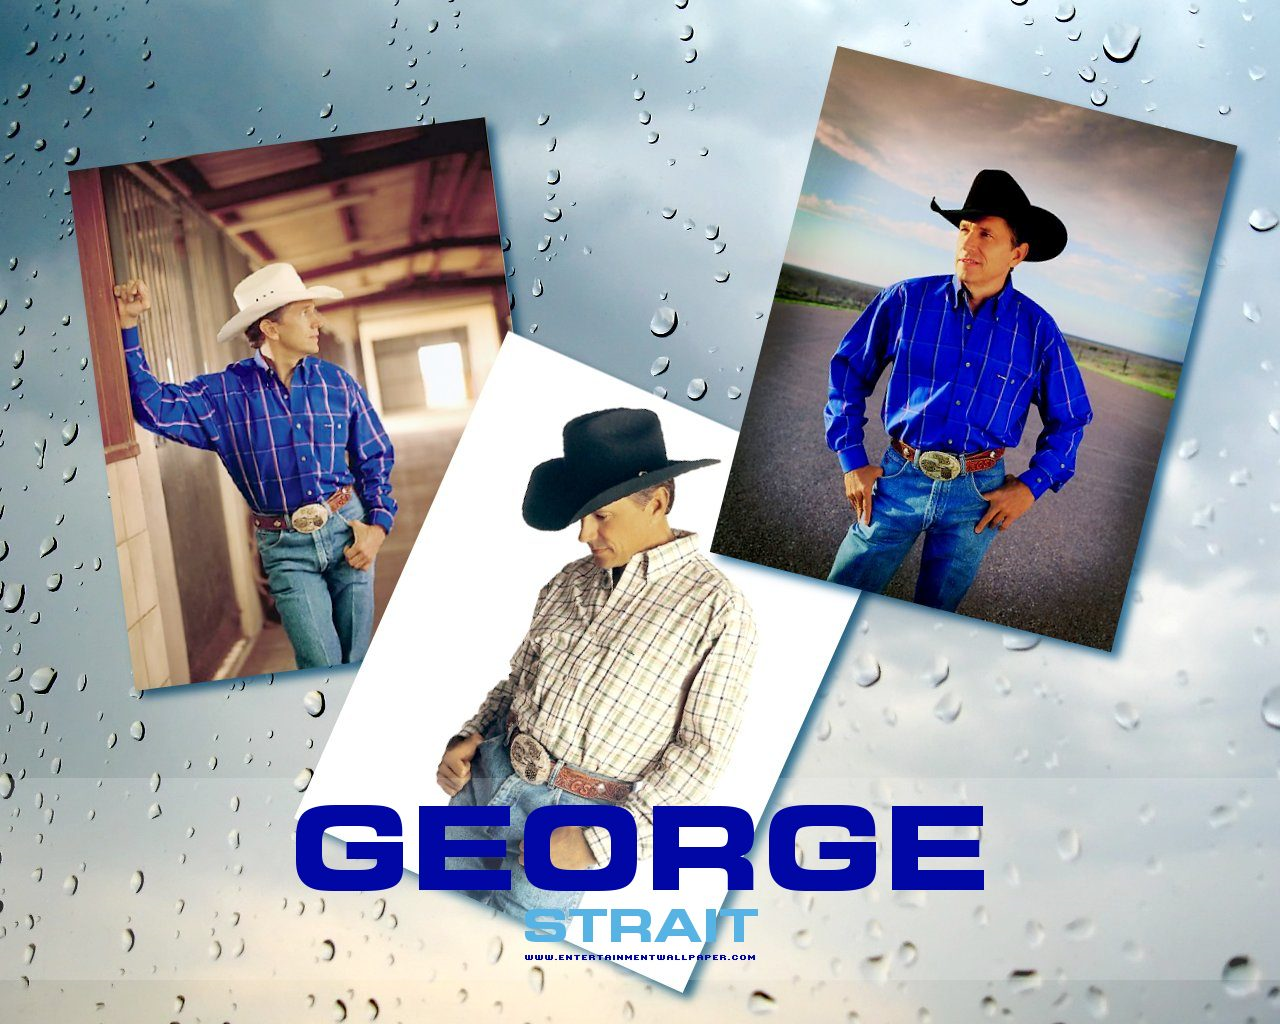 The True Story of George Strait